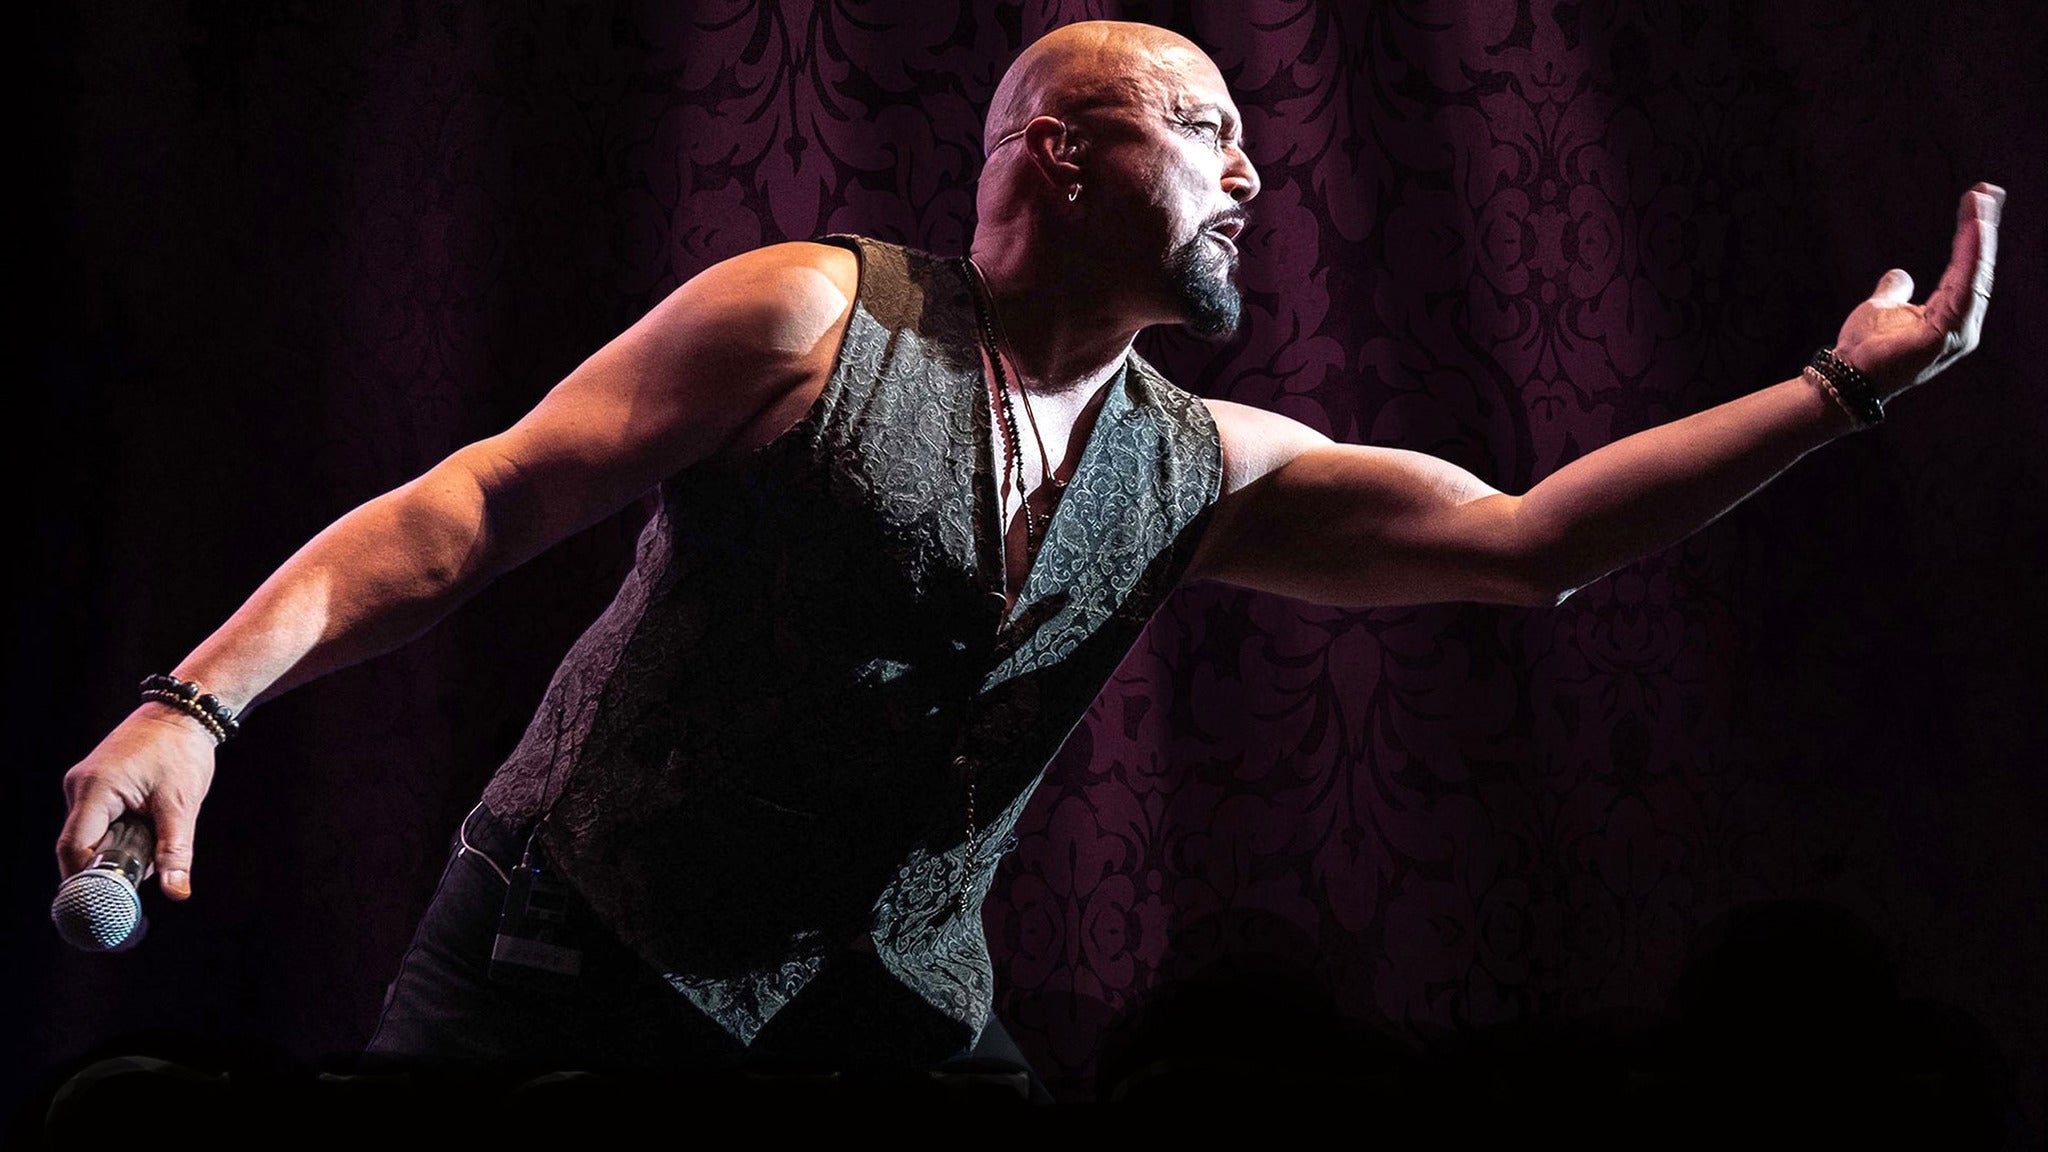 Geoff Tate - 30th Anniversary of Empire & Rage for Order